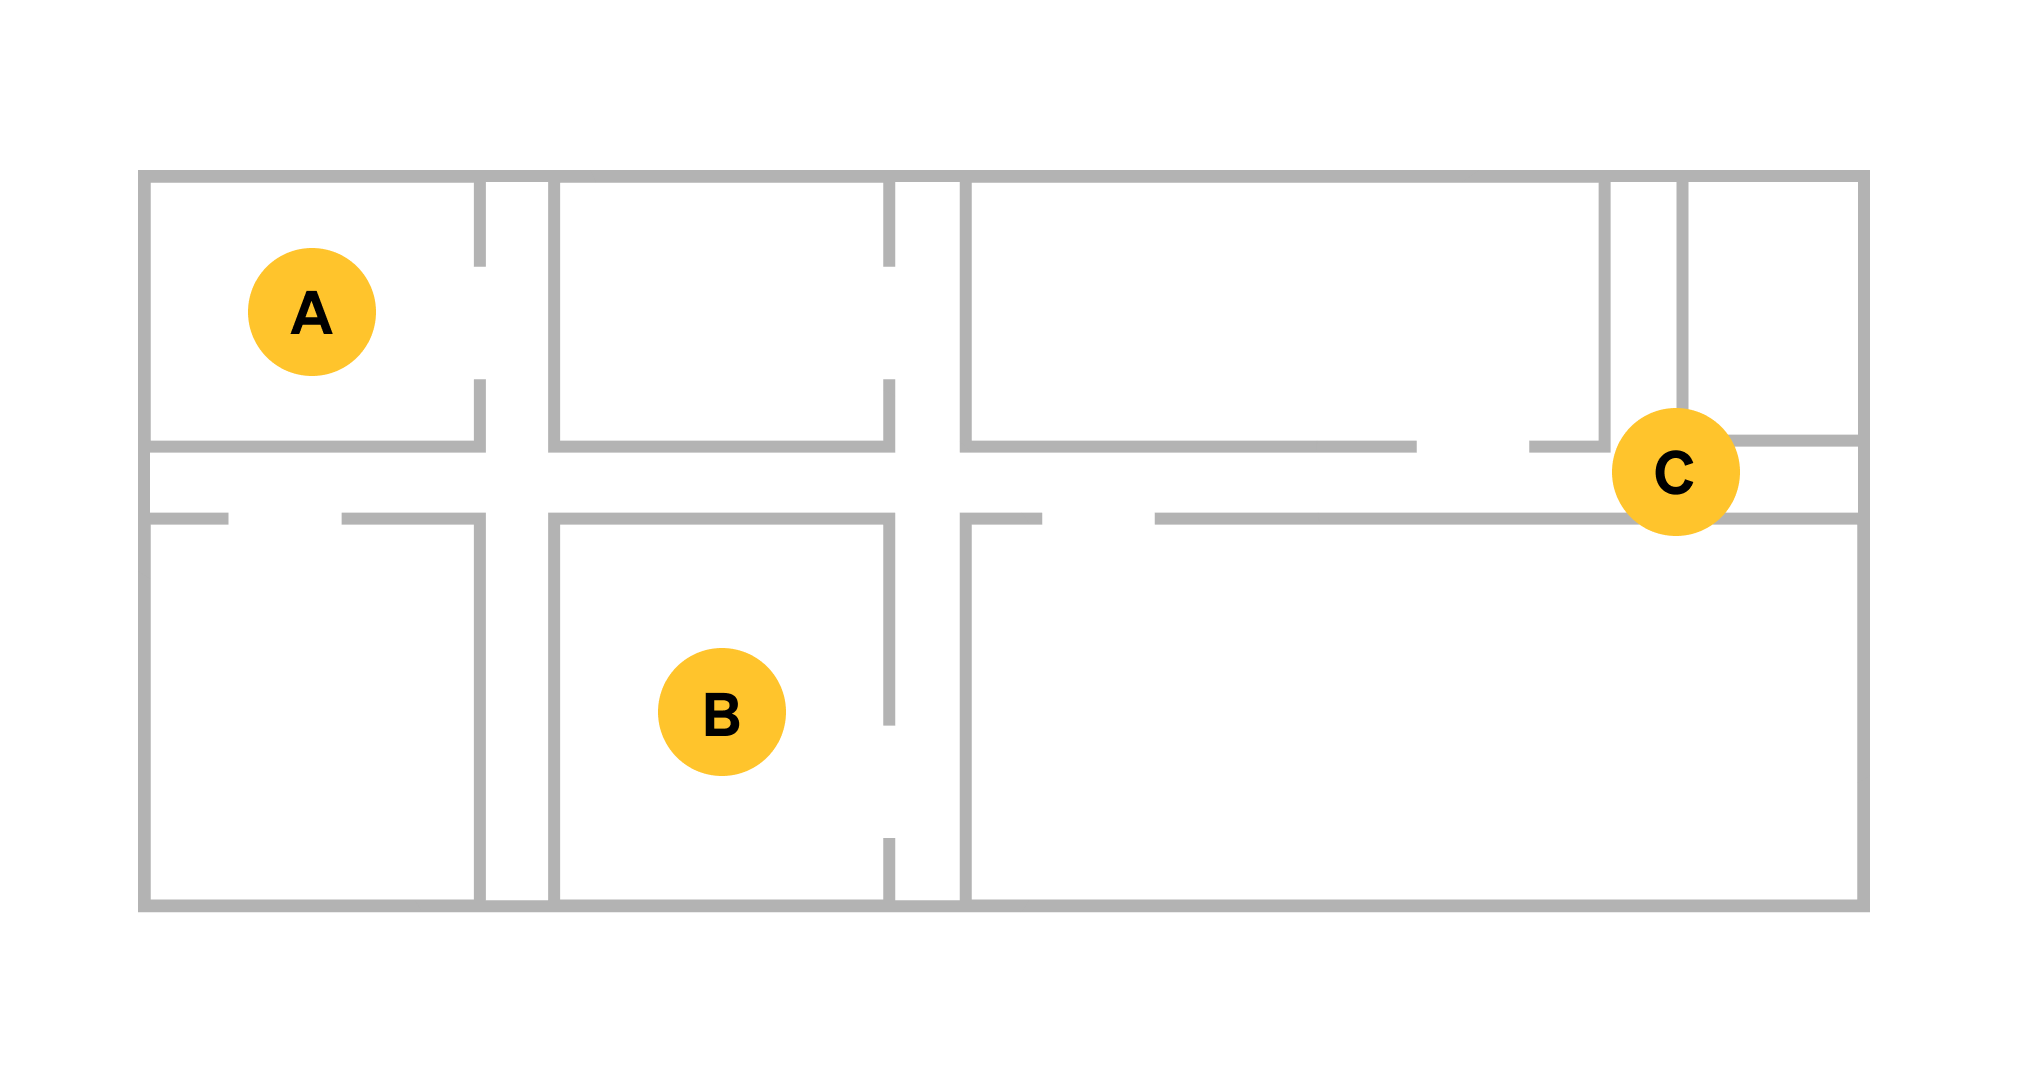 Spotto bluetooth beacon reader placement on a building floor plan.